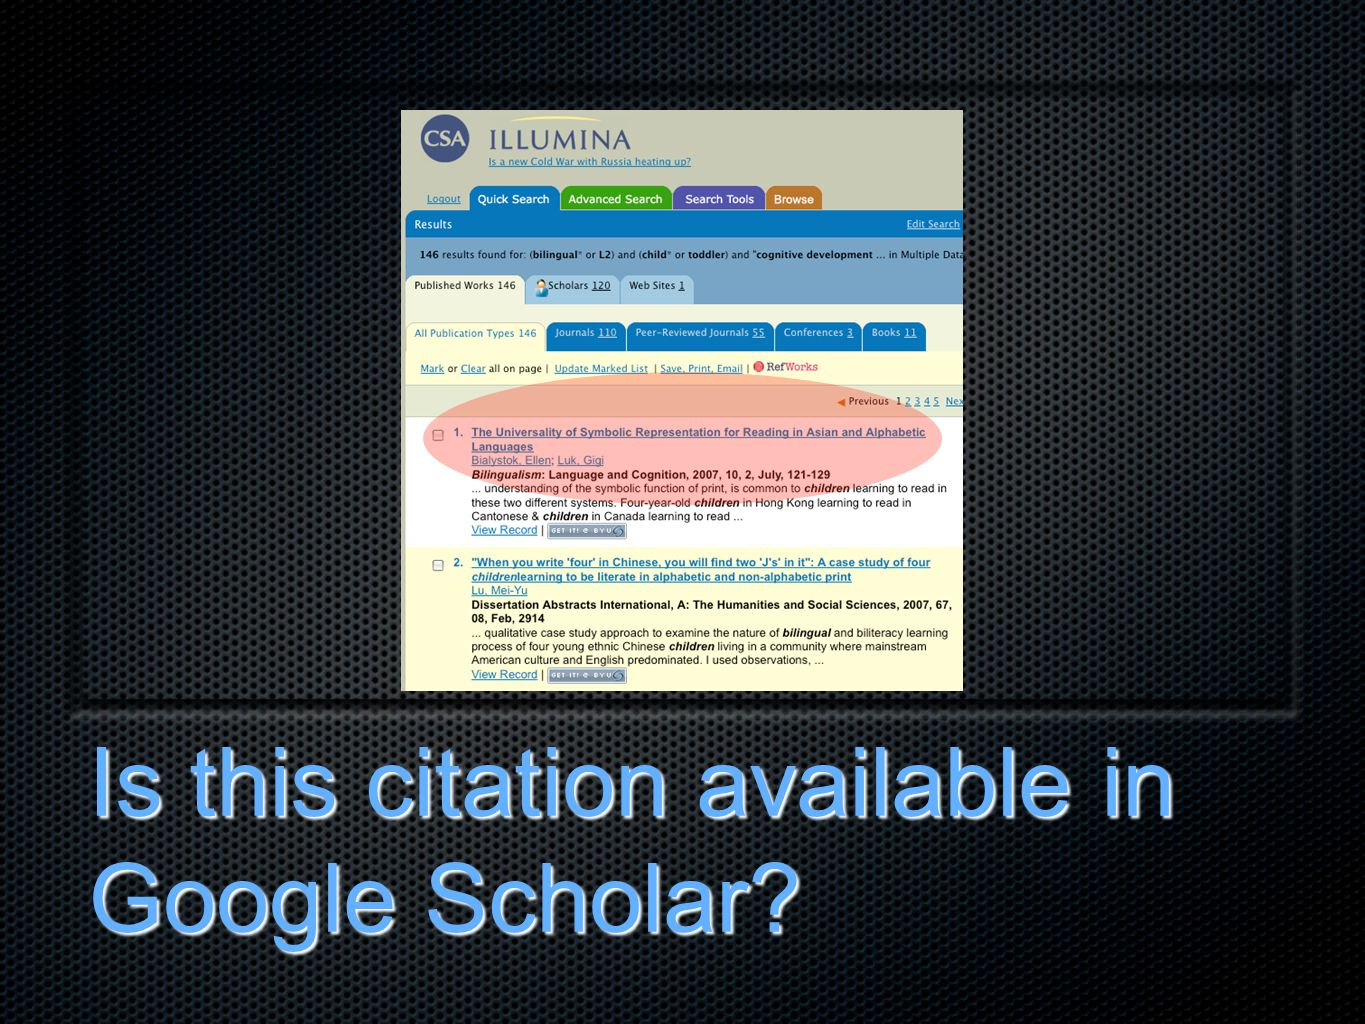 Is this citation available in Google Scholar